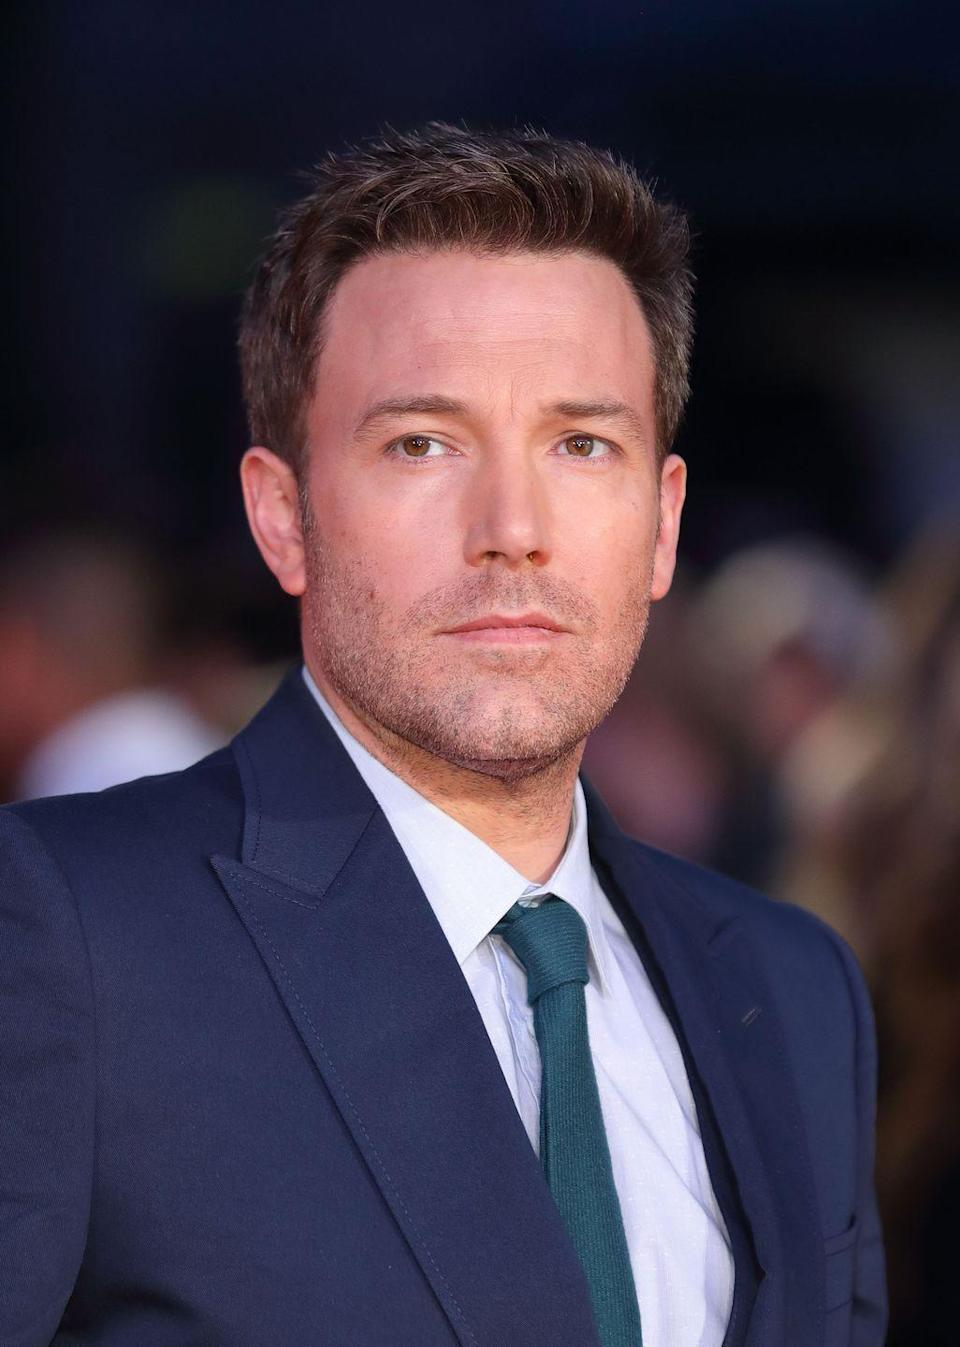 """<p>Affleck revealed during a <a href=""""http://www.nme.com/news/film/ben-affleck-hates-daredevil-1916051"""" rel=""""nofollow noopener"""" target=""""_blank"""" data-ylk=""""slk:TimesTalk"""" class=""""link rapid-noclick-resp"""">TimesTalk</a> he regretted doing the 2003 superhero film, which bombed at the box office. """"Part of it was I wanted for once to get one of these movies and do it right–to do a good version. I hate <em>Daredevil</em> so much.""""</p>"""